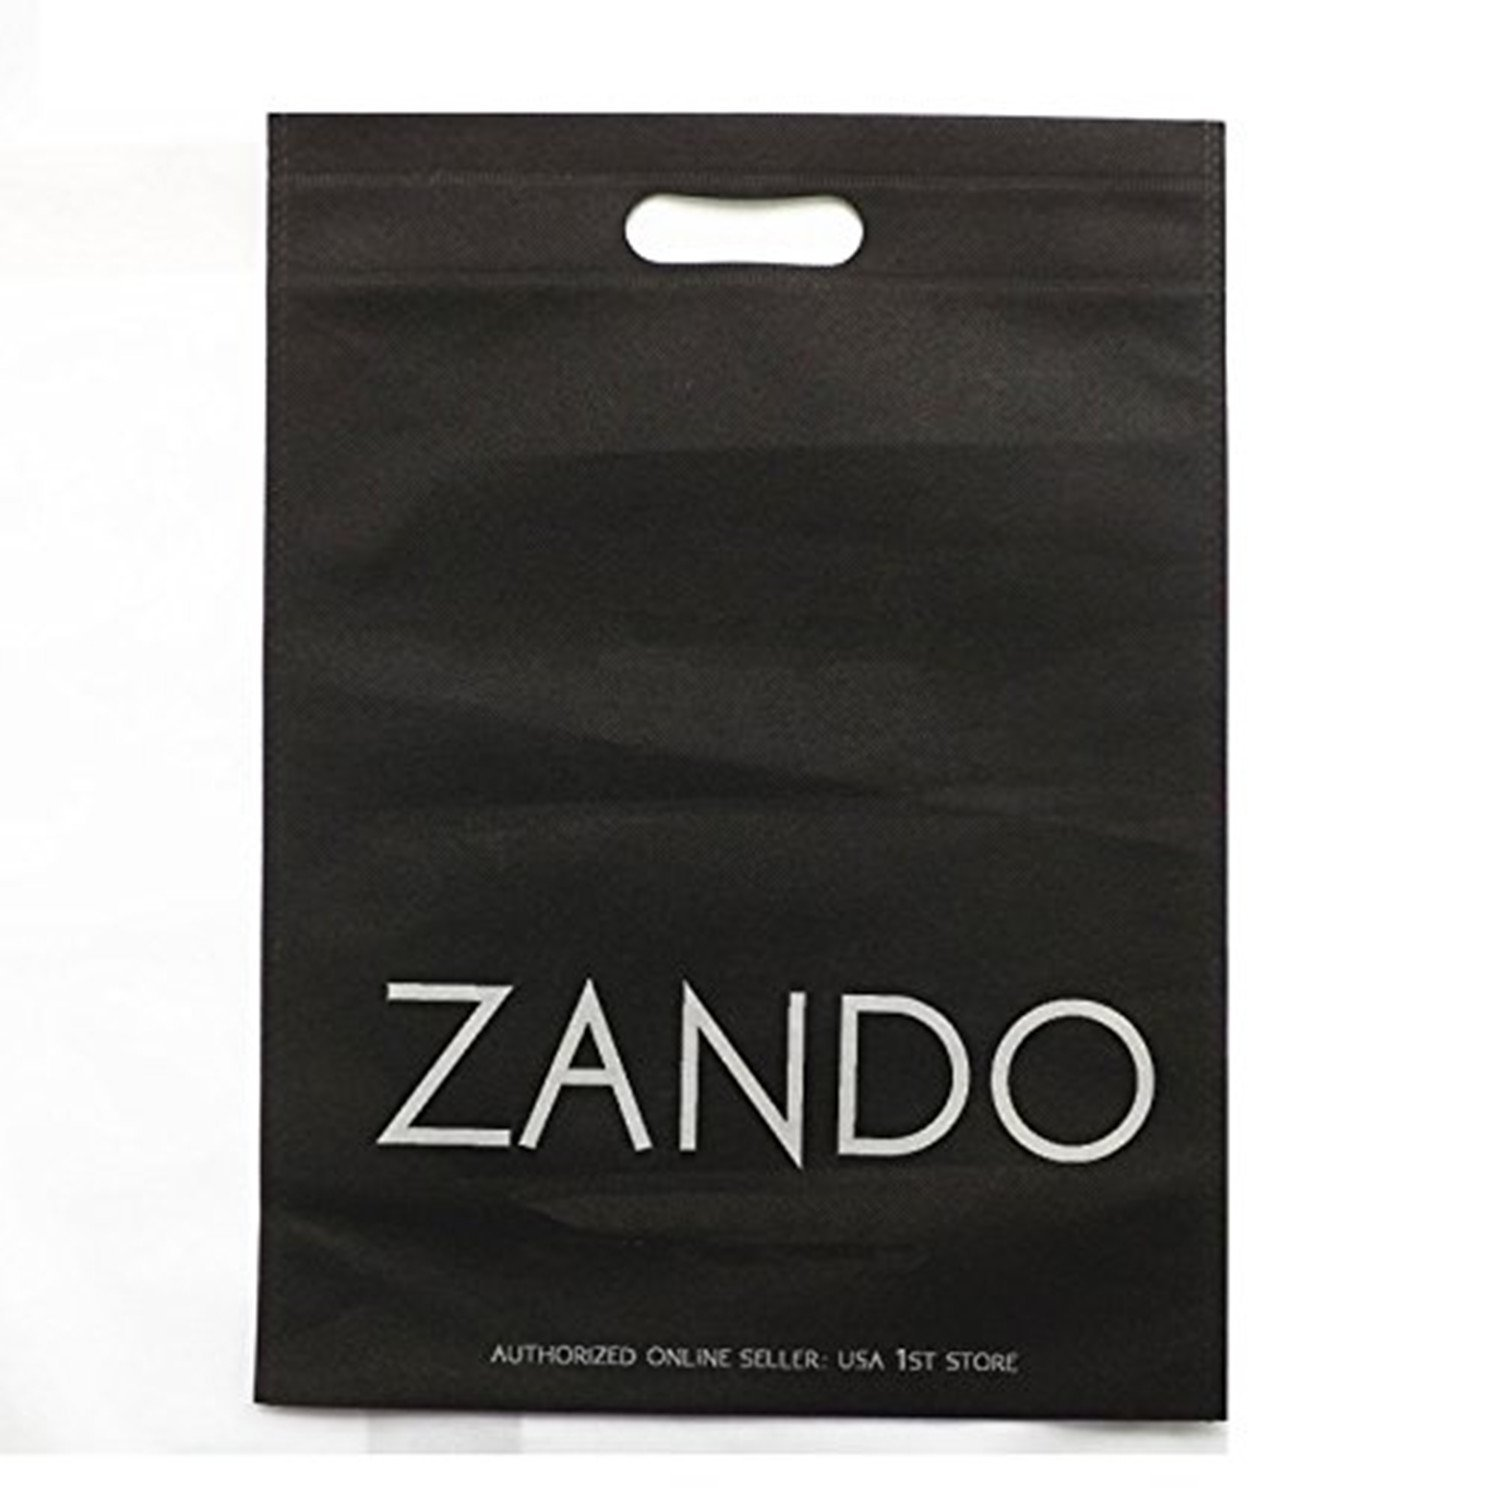 Zando Girl's Ultra Soft Pro Ballet Dance Tight Toddler Kids Footed Leggings Elastic Opaque Pants Tight 2 Pack Skin Color L by Zando (Image #5)